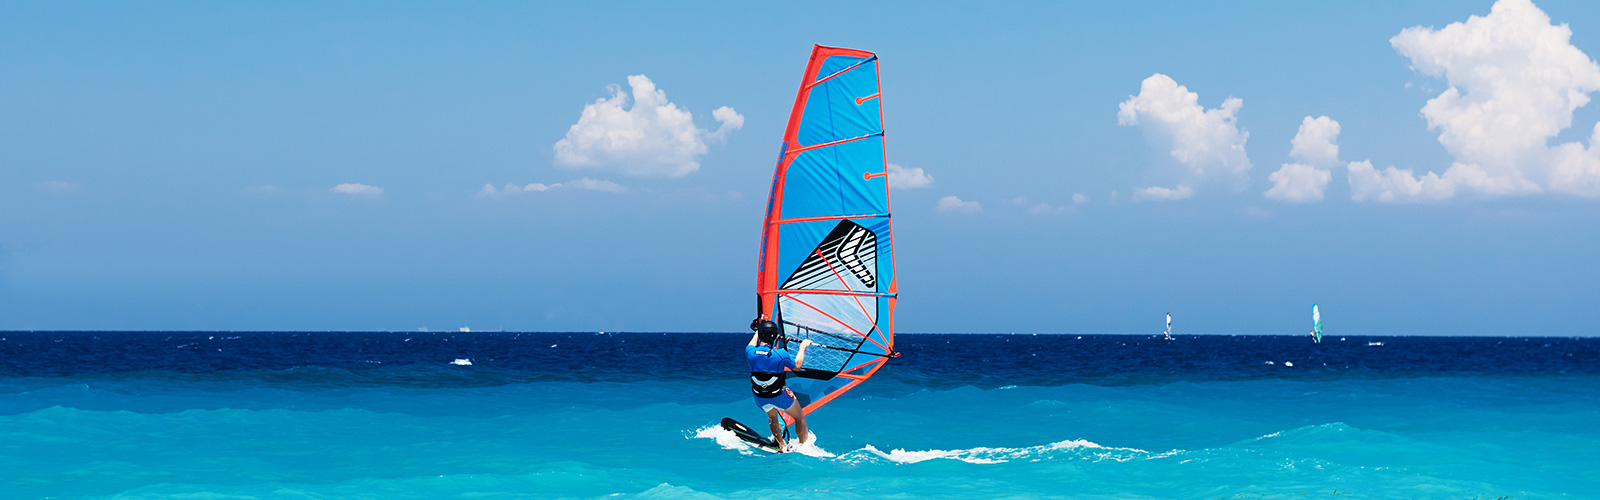 Windsurfing Maldives Watersports